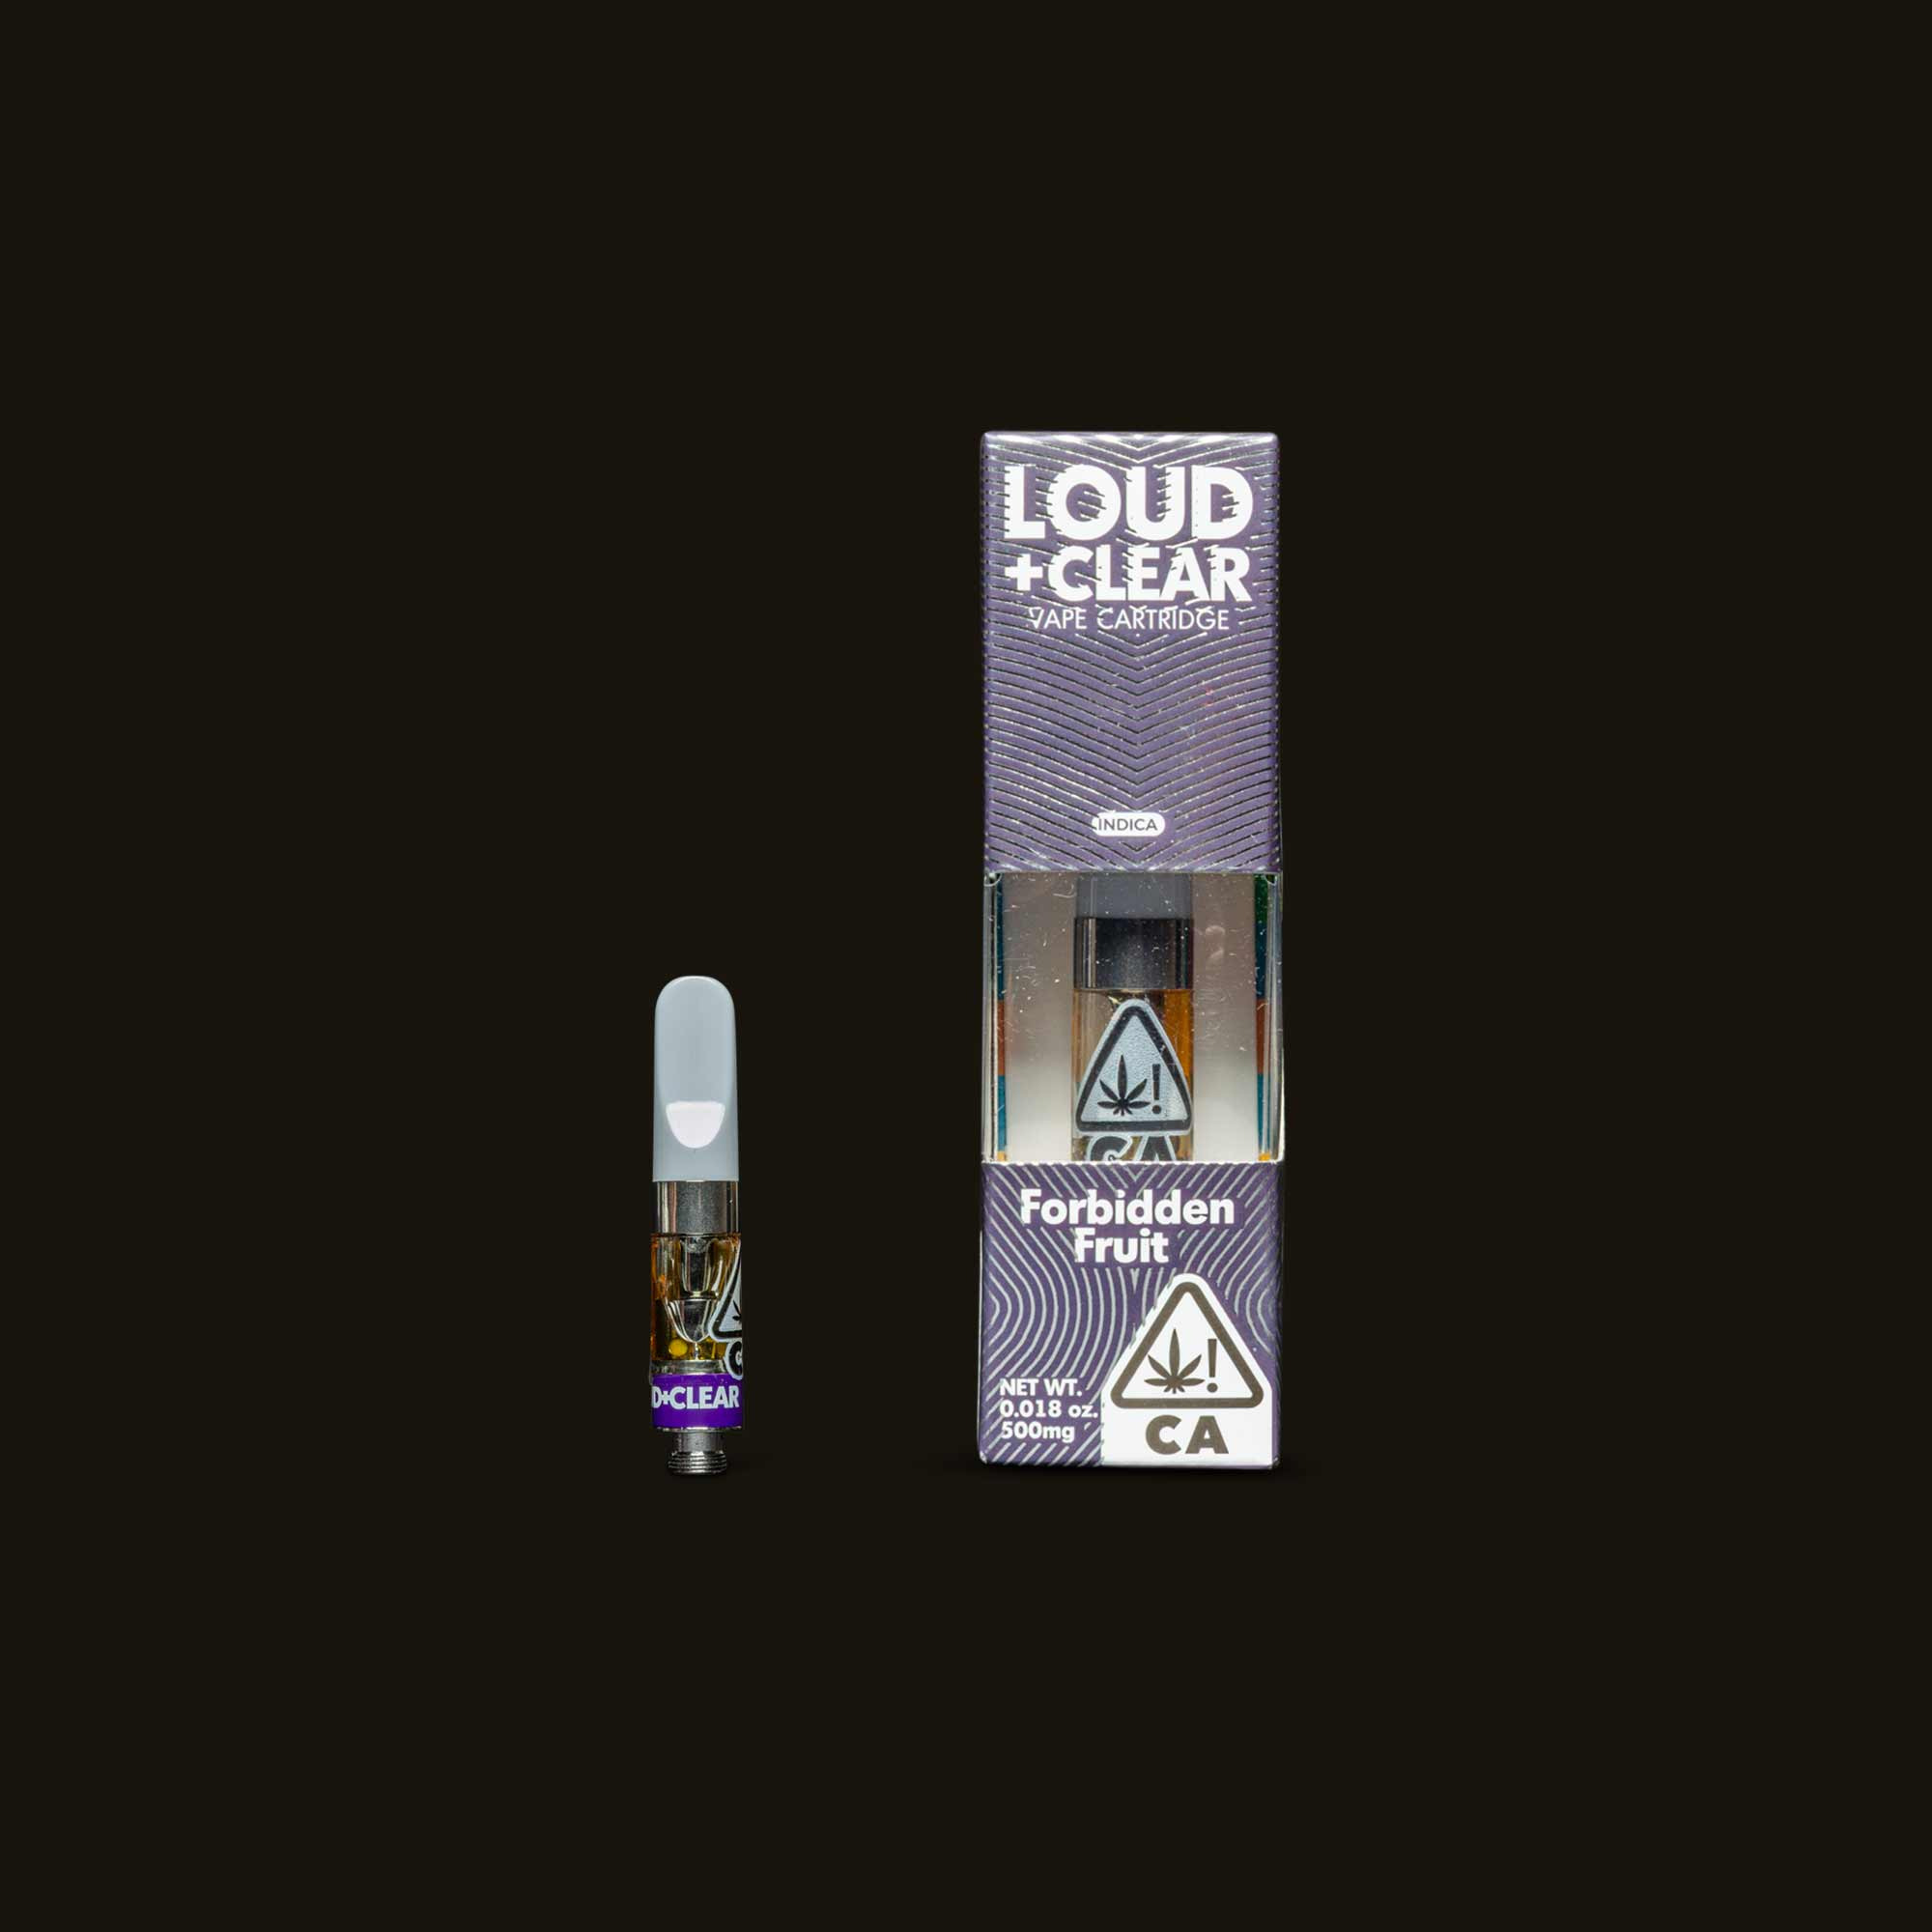 AbsoluteXtracts Forbidden Fruit by Loud + Clear